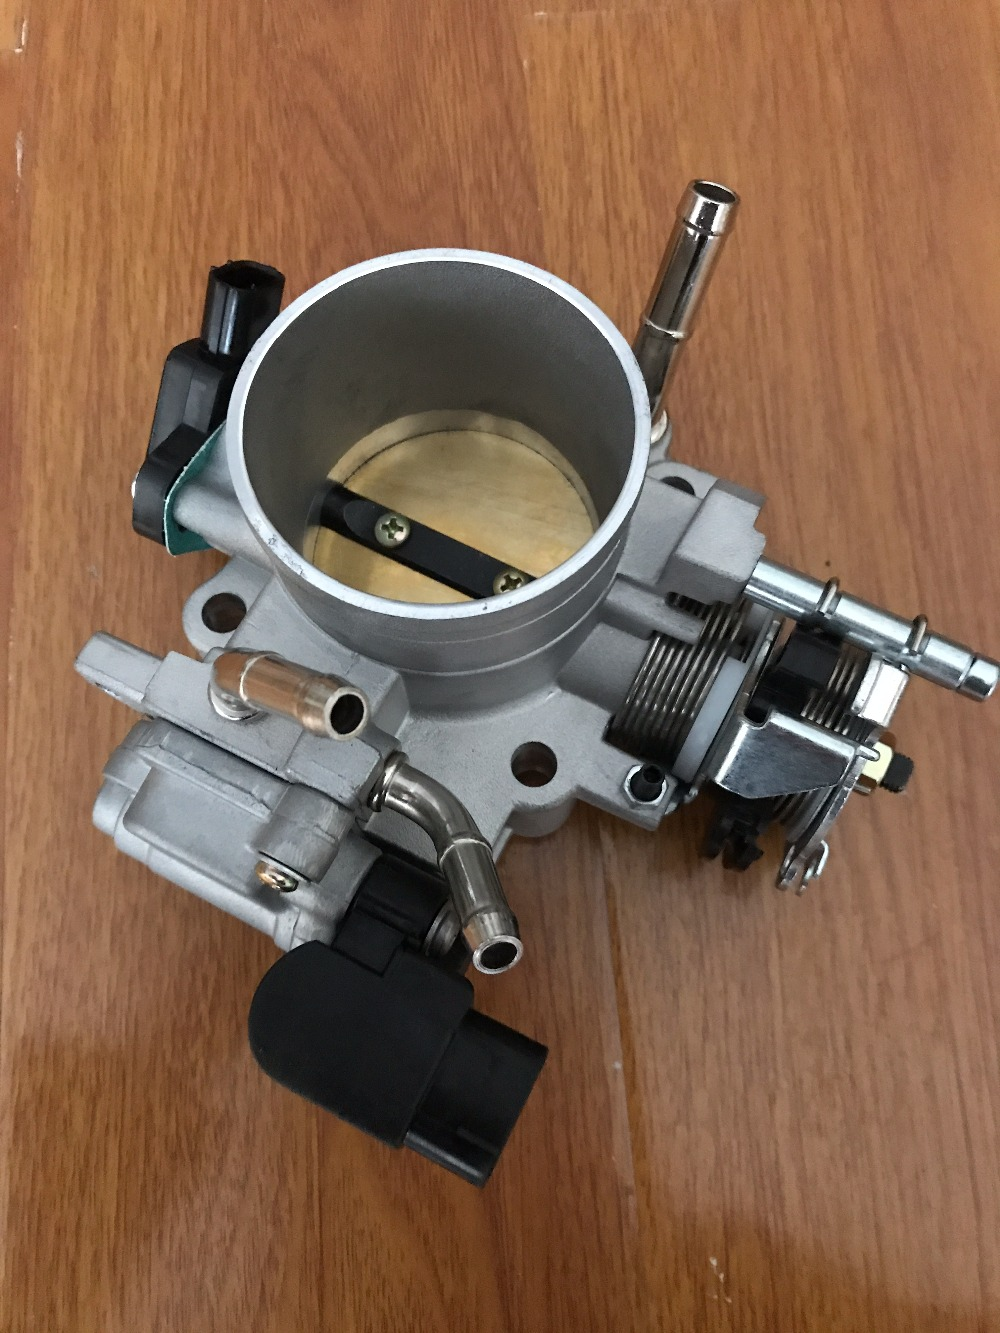 Cable Drive Throttle Body For Honda Accord DX LX EX 2.4L 2003-05 16400RAAA62 bix h2400 advanced full function nursing training manikin with blood pressure measure w194